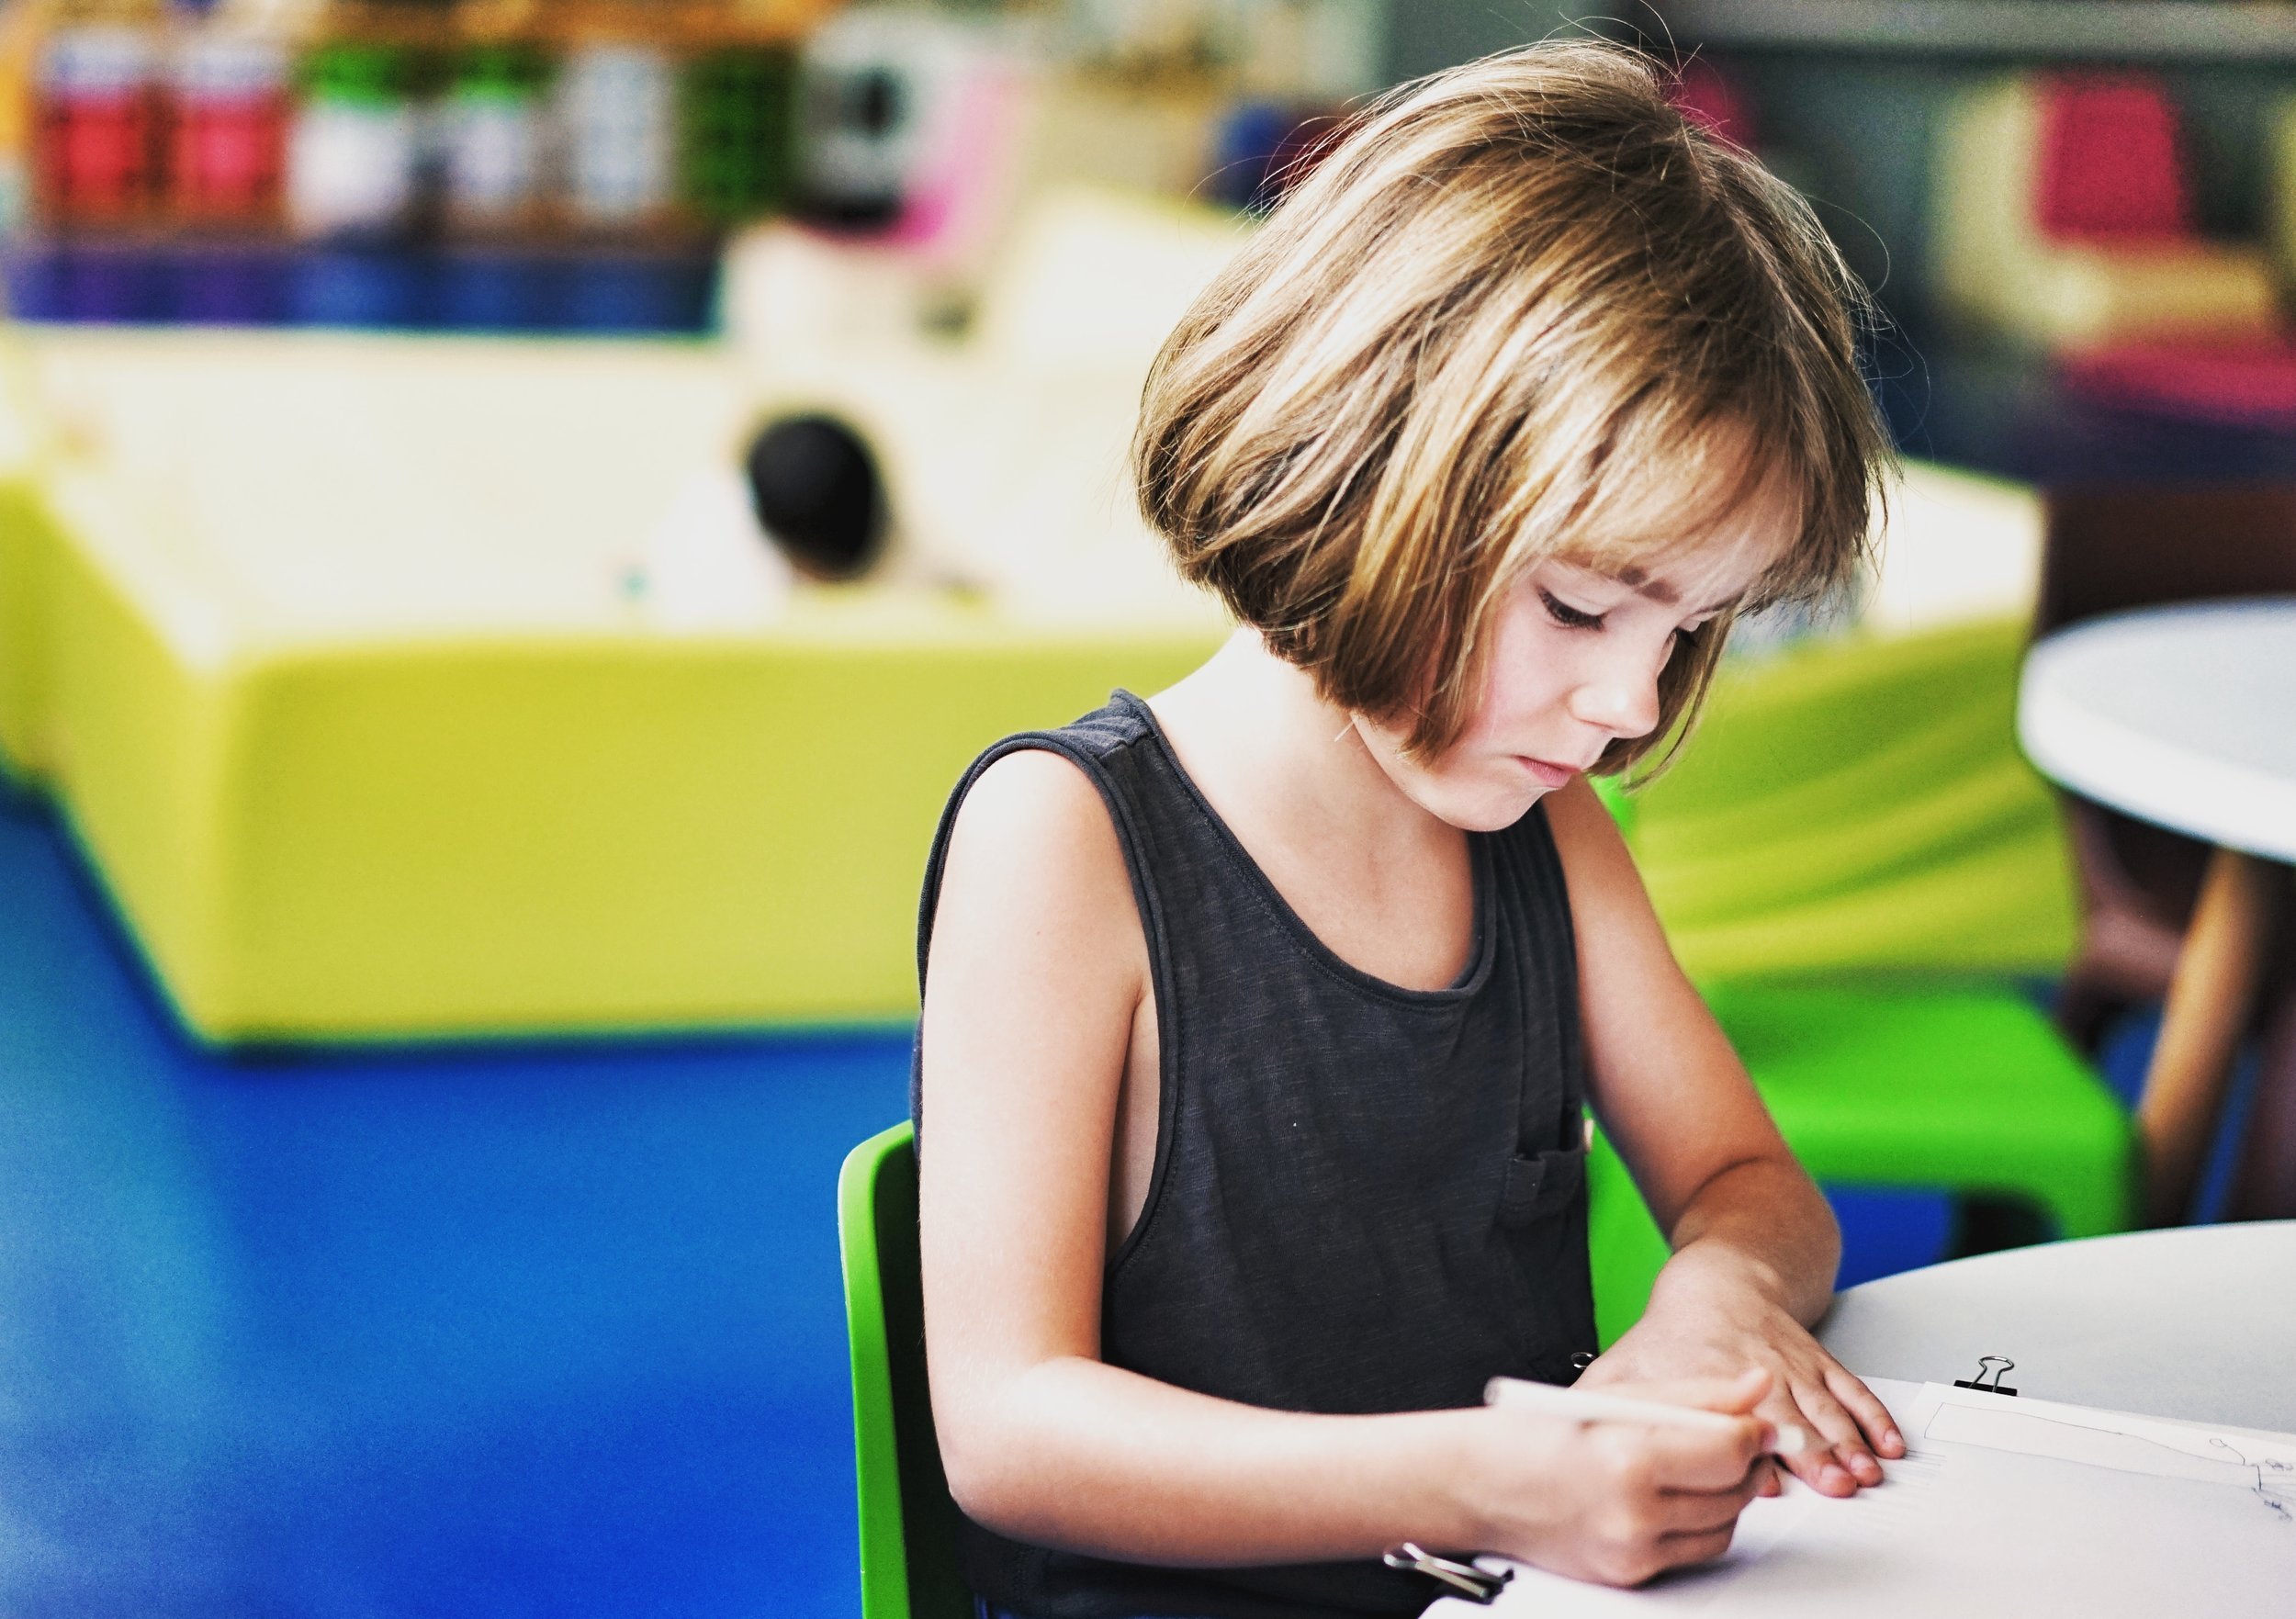 We work directly with schools and Local Authorities - There are over 2 million vulnerable children in the UK.1.6 million of these have no established, recognised form of support. This responsibility to provide a myriad of alternative educational provisions to these children falls on Local Authorities.